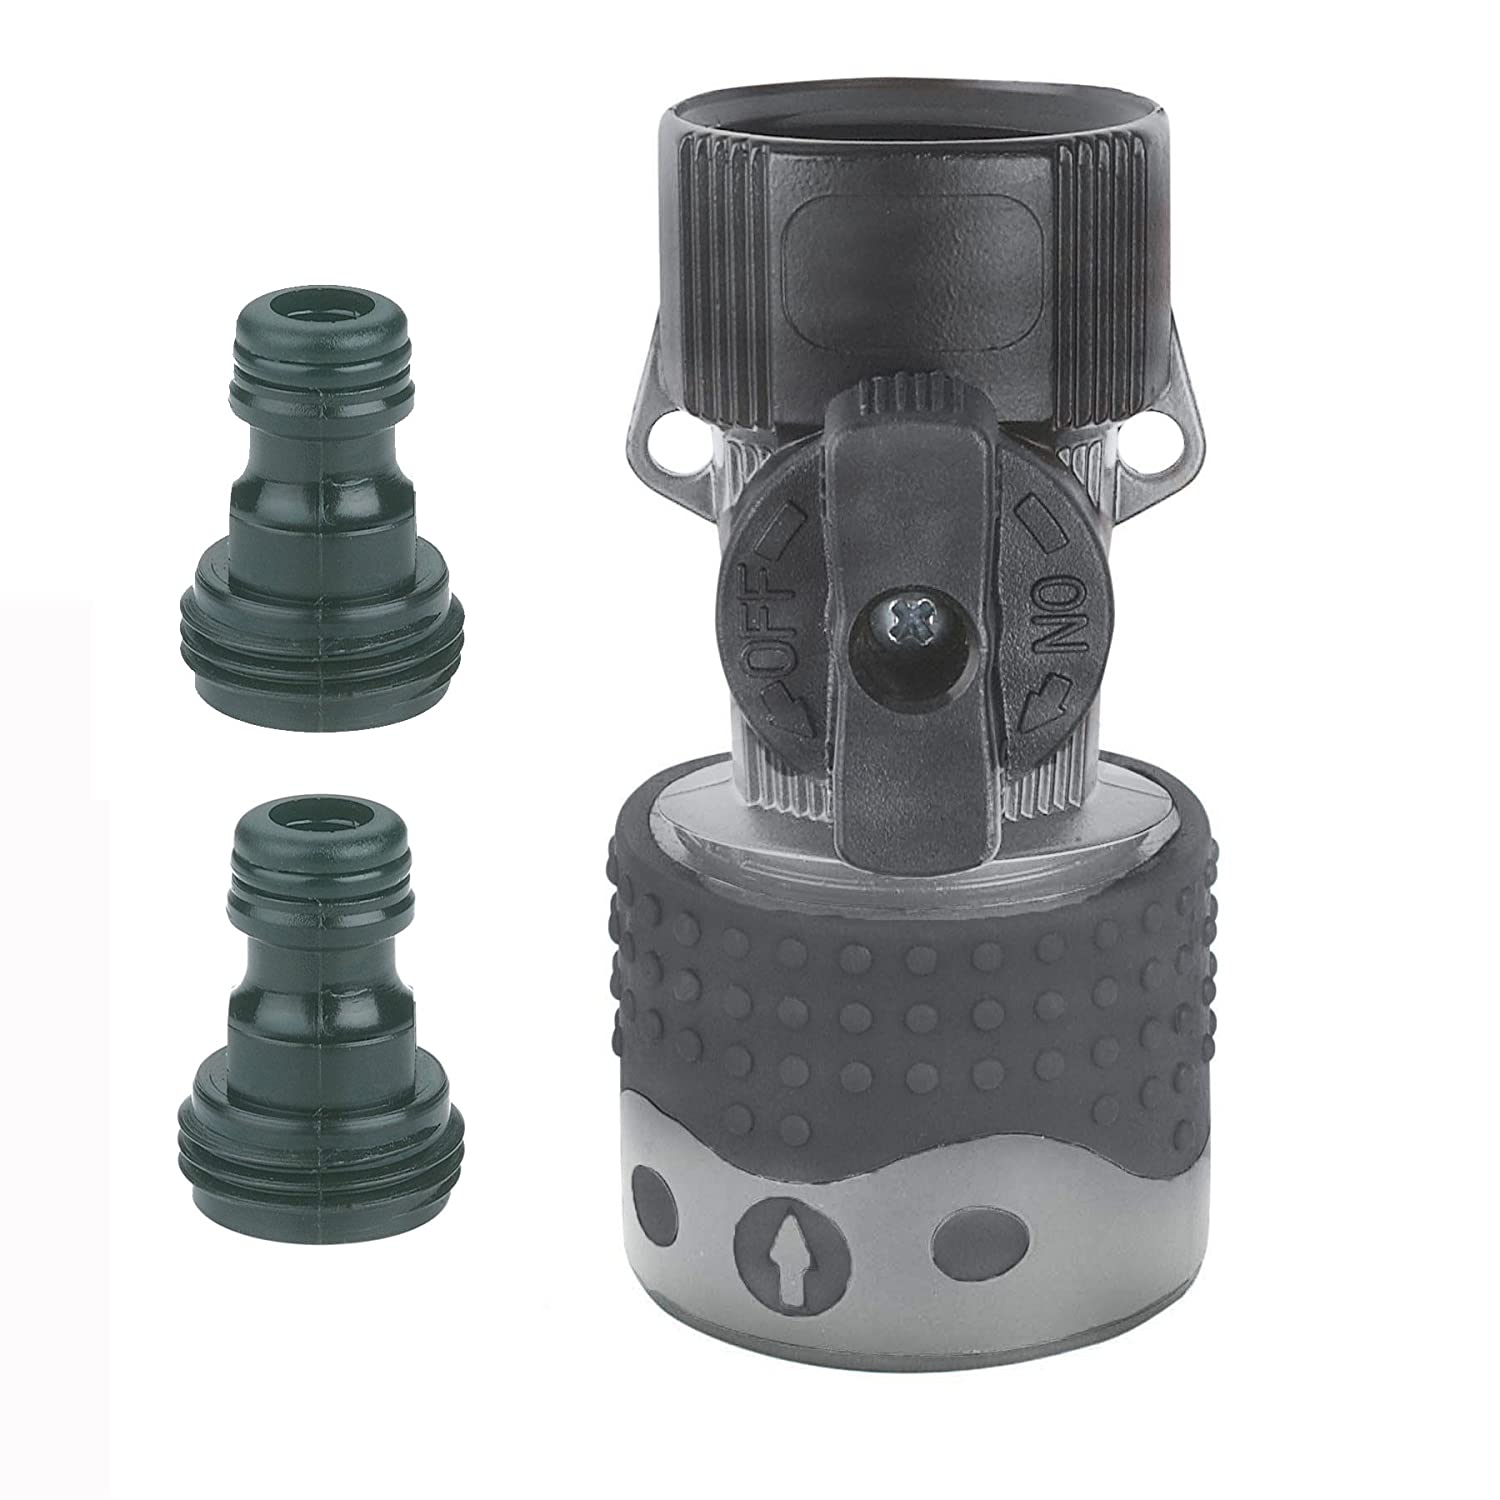 Gilmour Hose End Quick Connector Set 29Q Teal/Black, Green